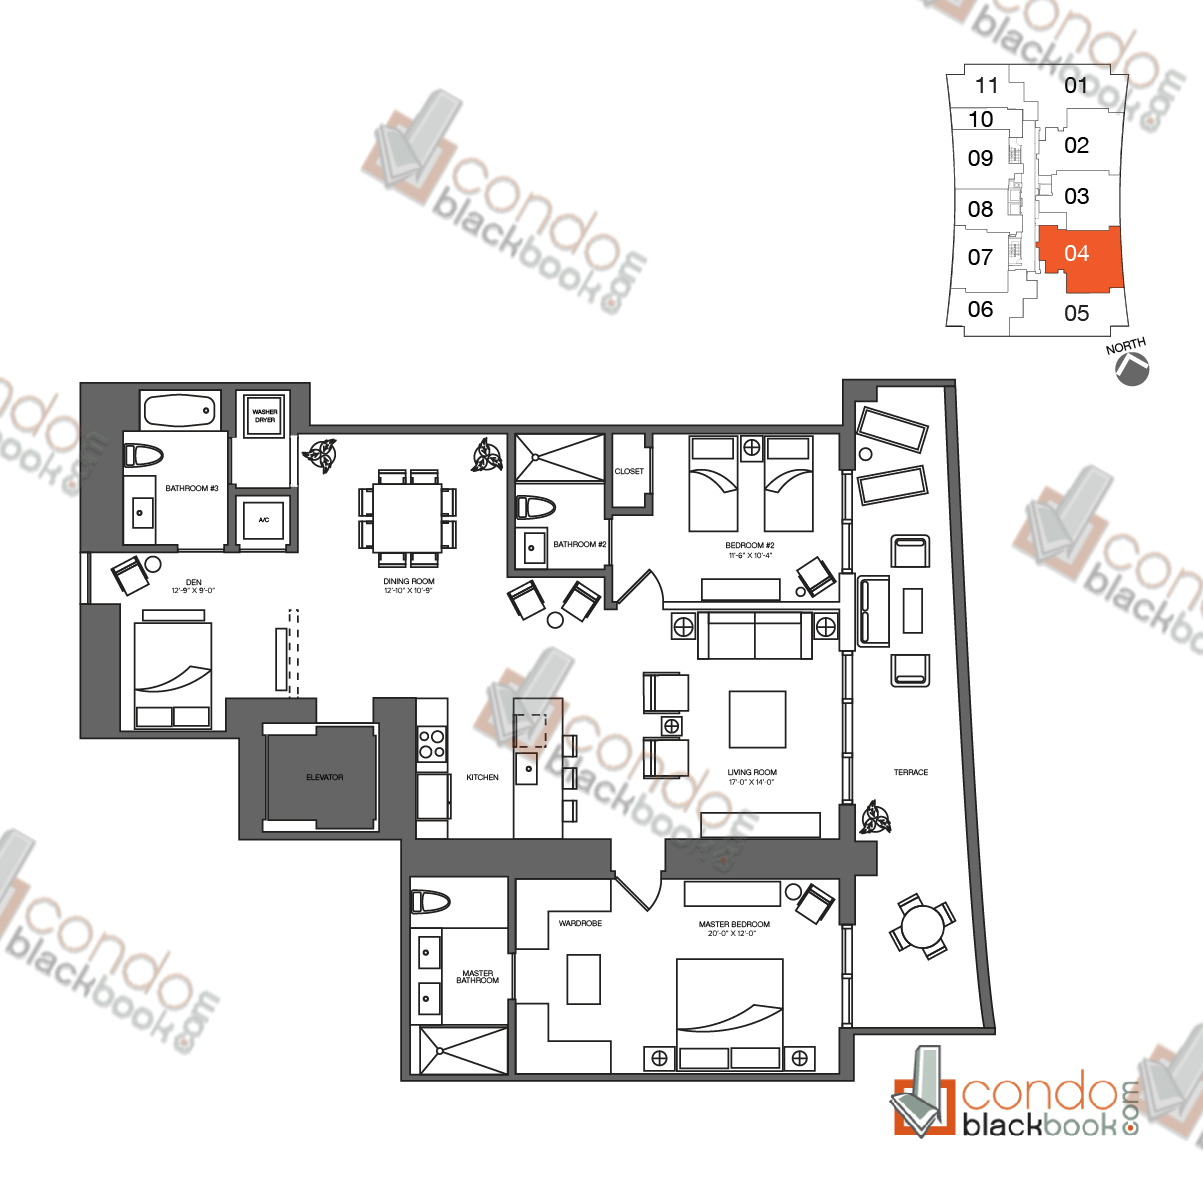 Floor plan for 1010 Brickell Brickell Miami, model D, line 04, 2/3 + Den bedrooms, 1,778 sq ft